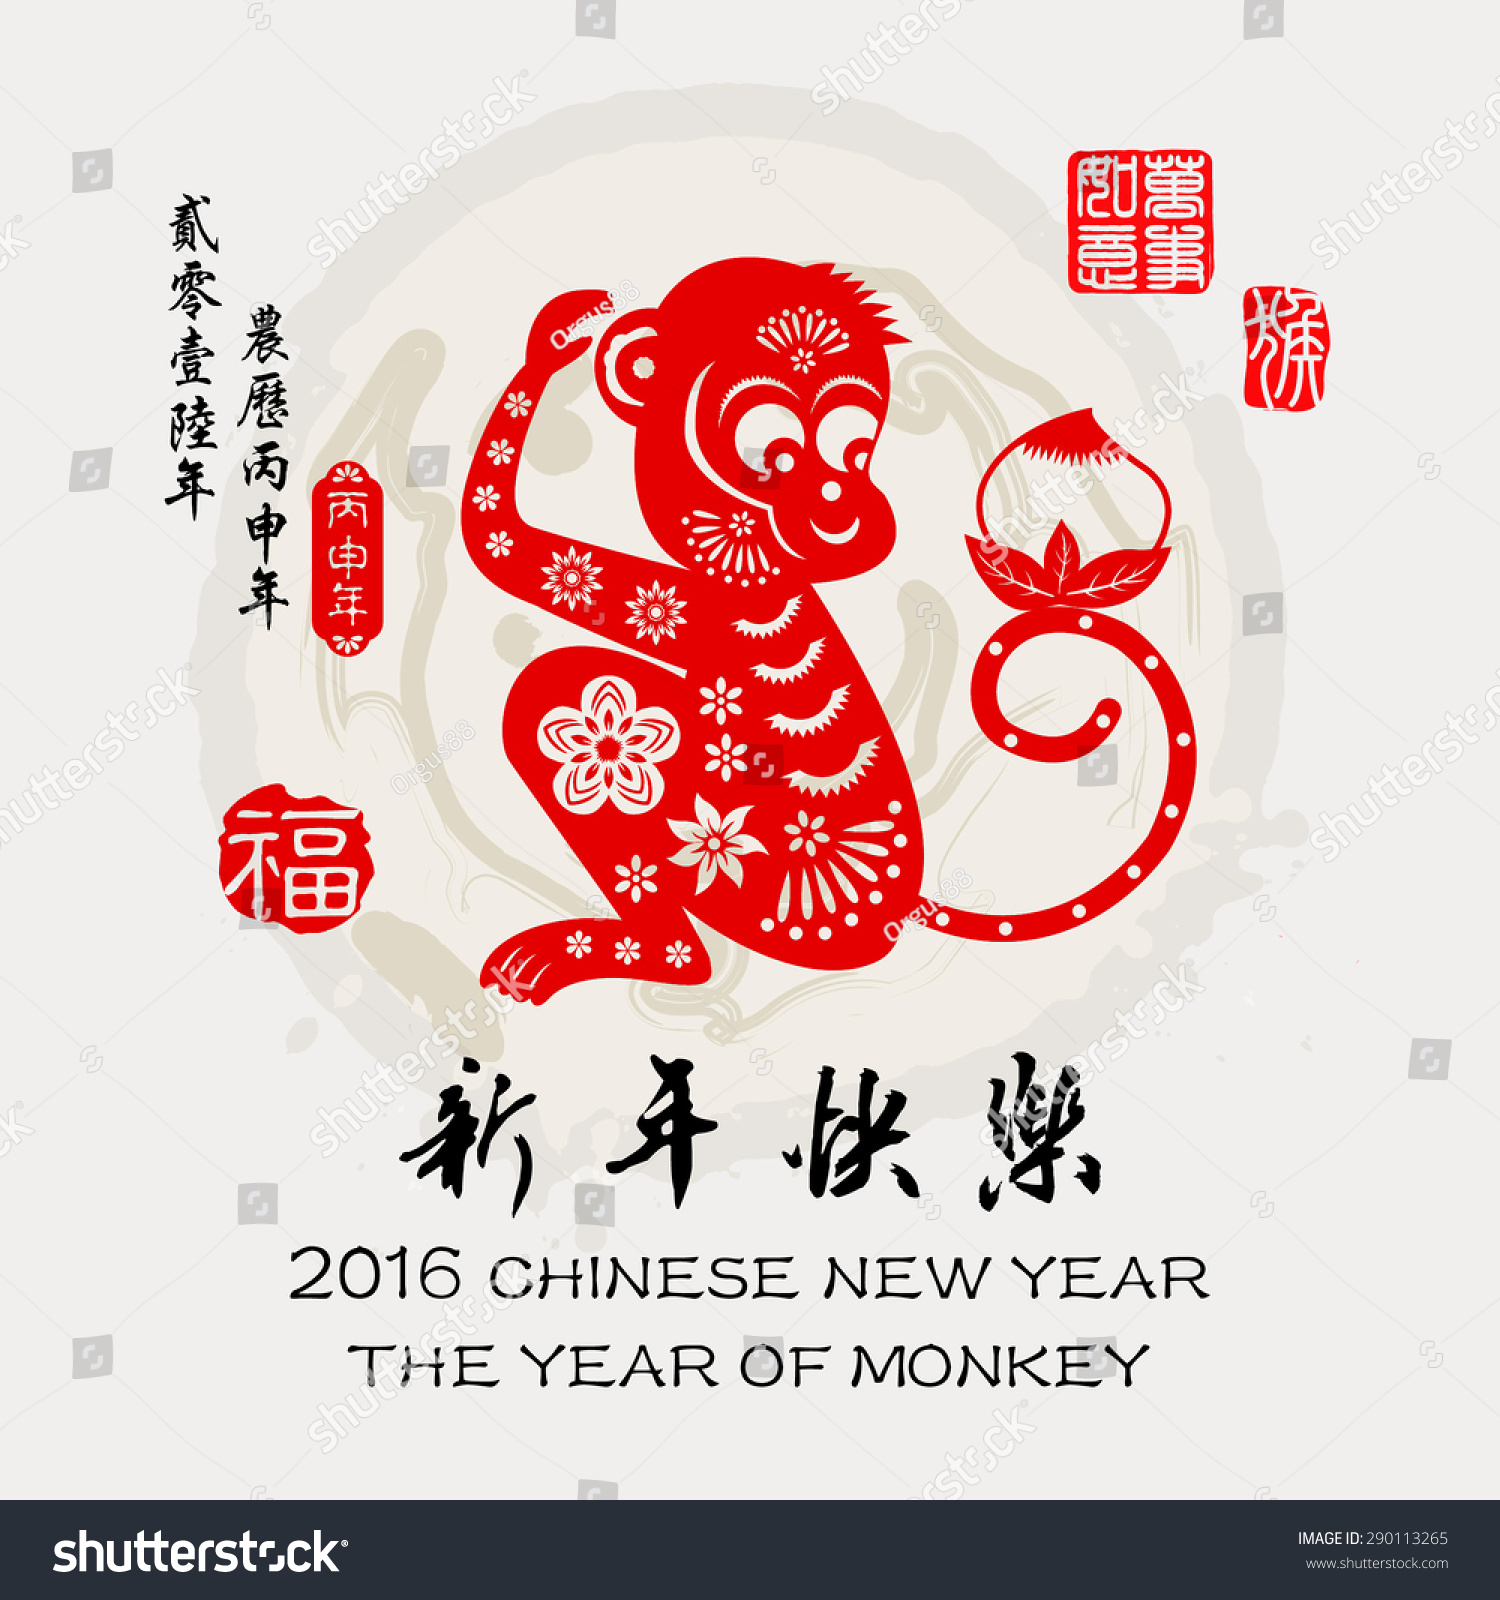 2016 Lunar New Year Greeting Card Stock Vector 290113265 ...